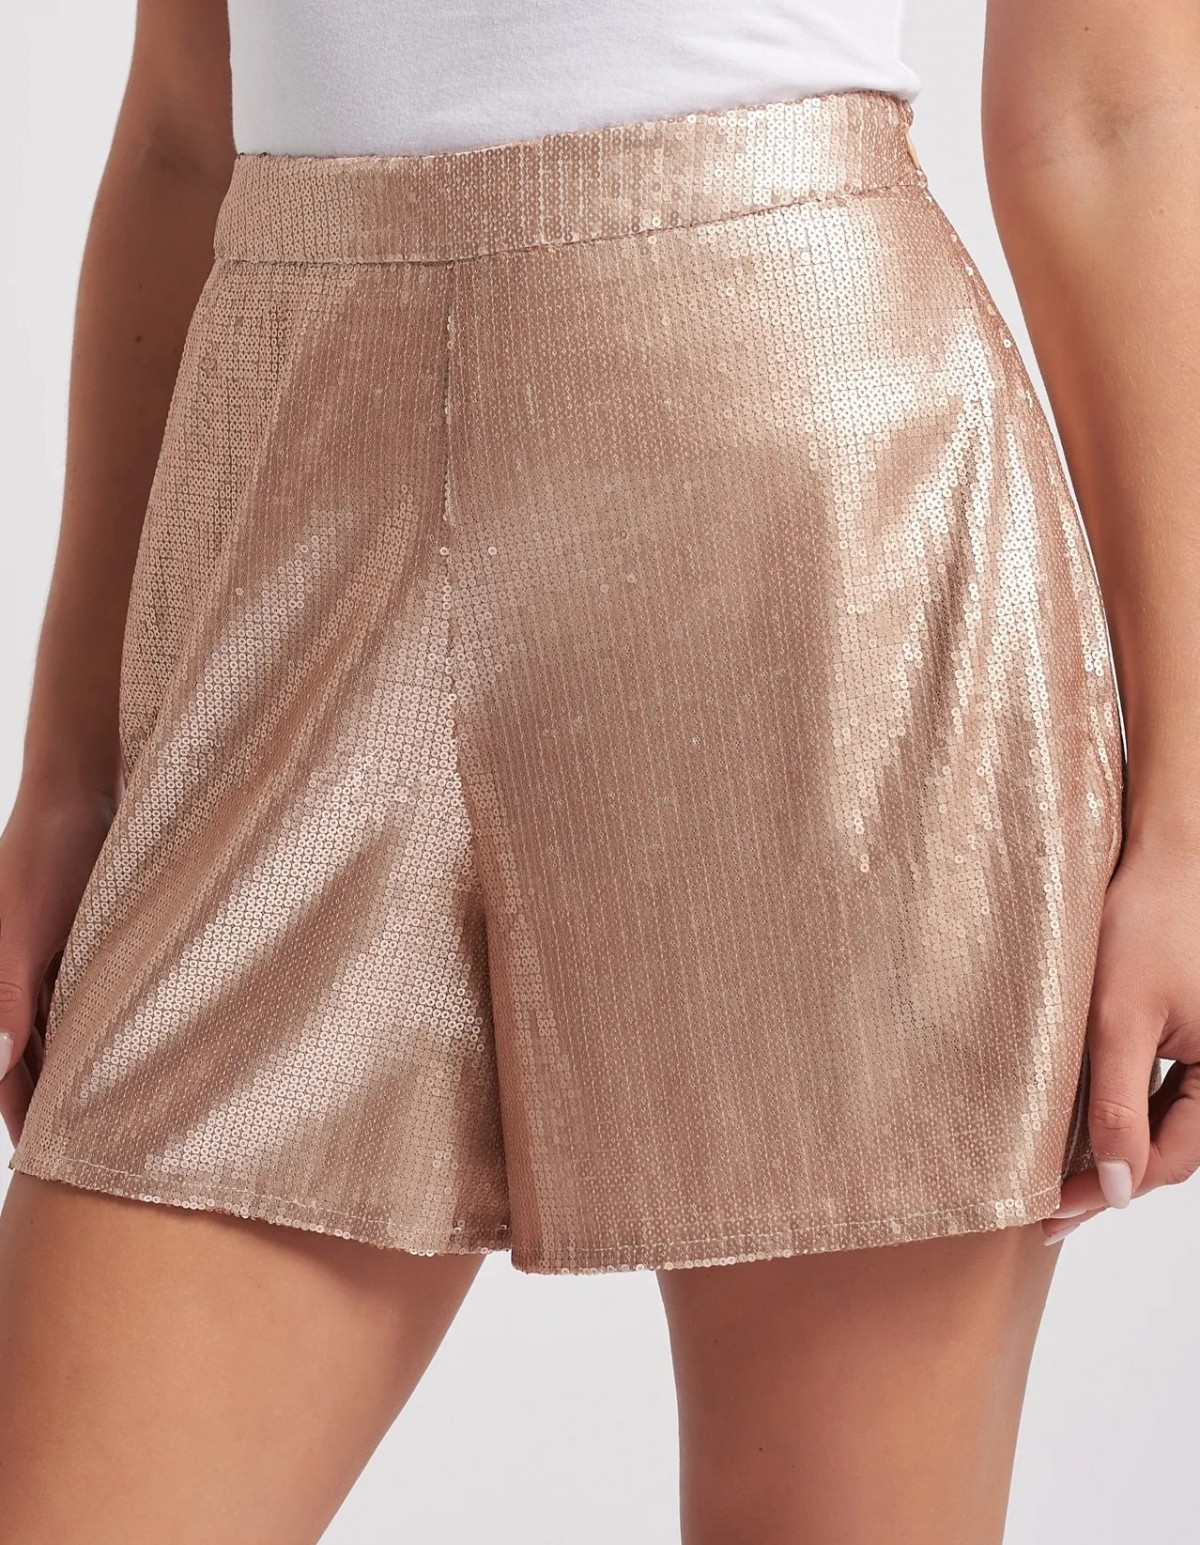 Nude Sequin Shorts by Forever Unique